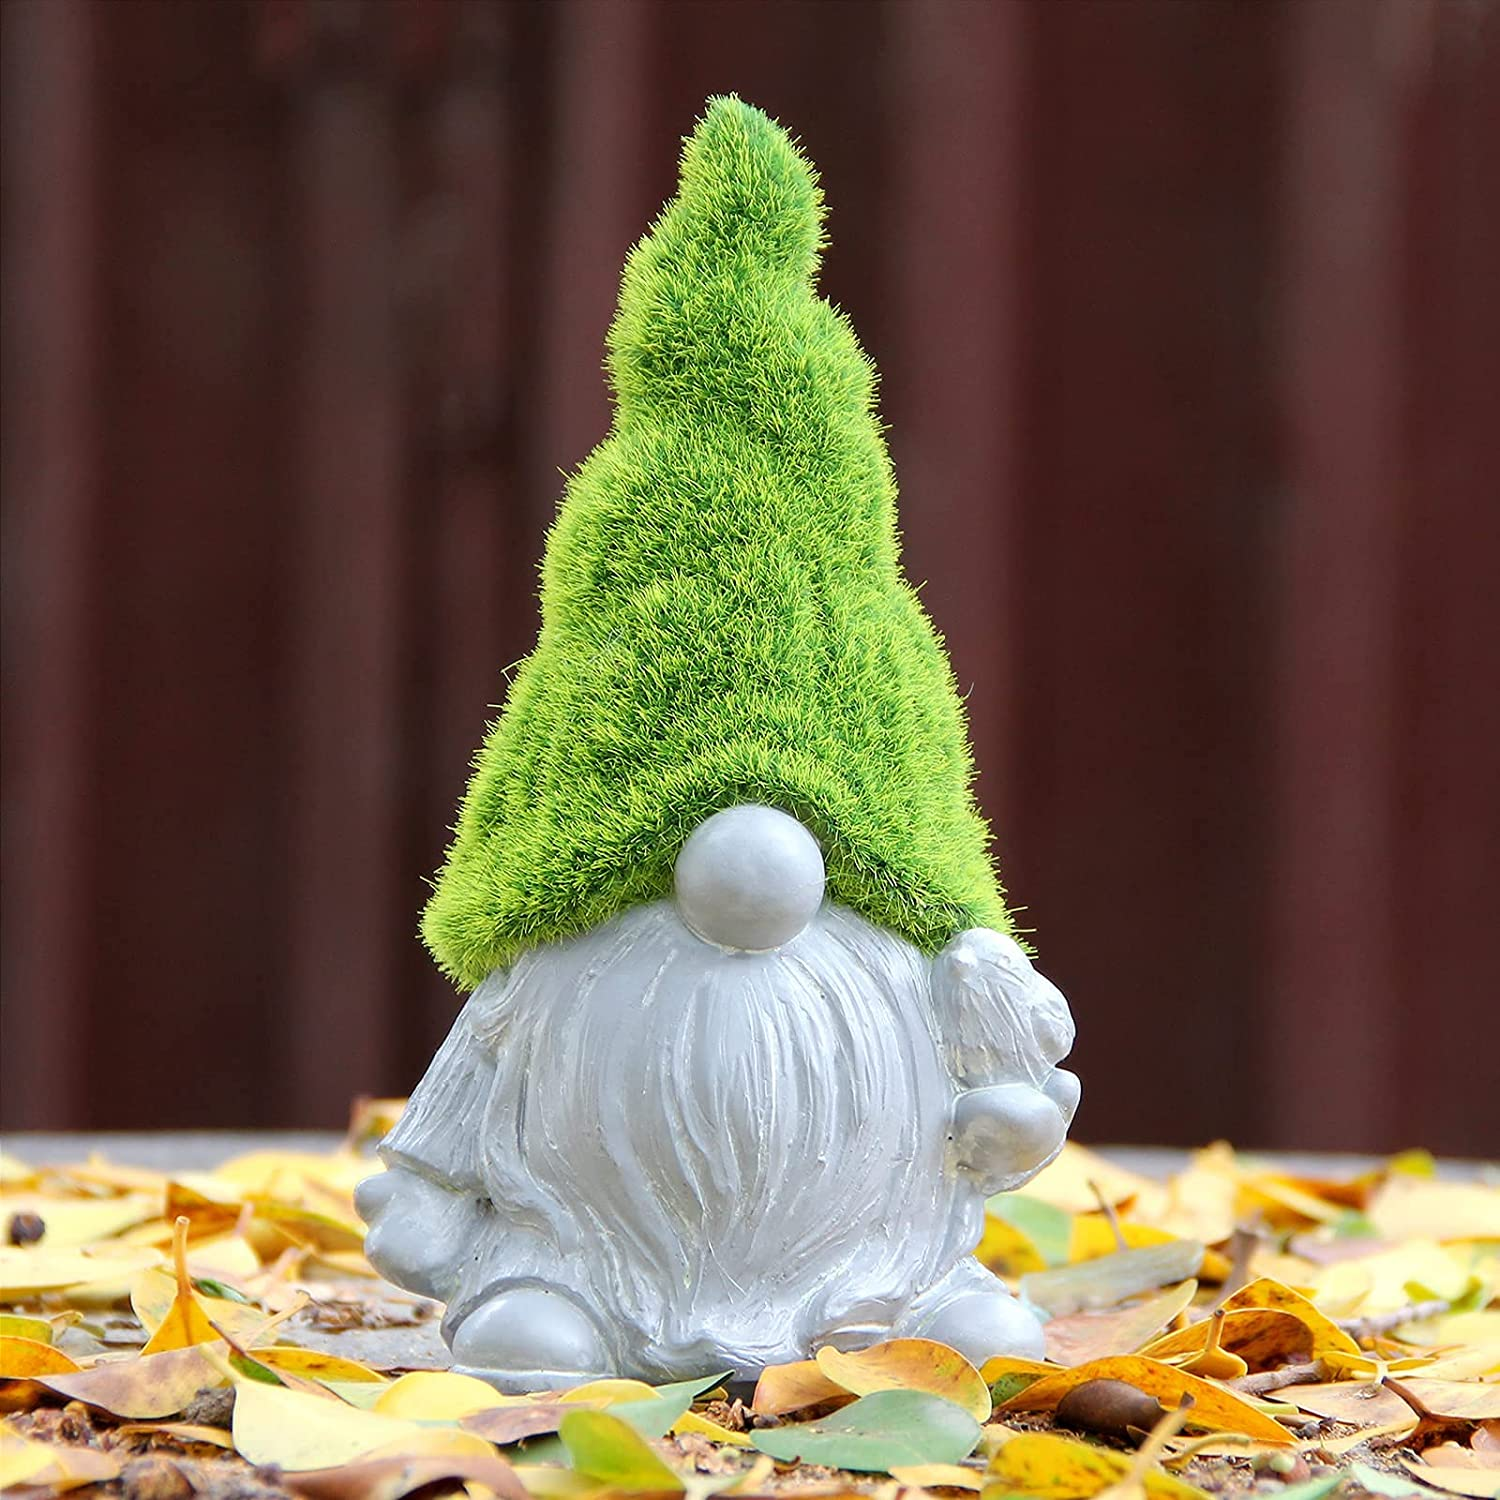 Leekung Garden gnome Statue Outdoor Decor,Flocked Gnomes Garden Decorations,Indoor gnome Sculpture Figurine Cement Color for Home Decoration